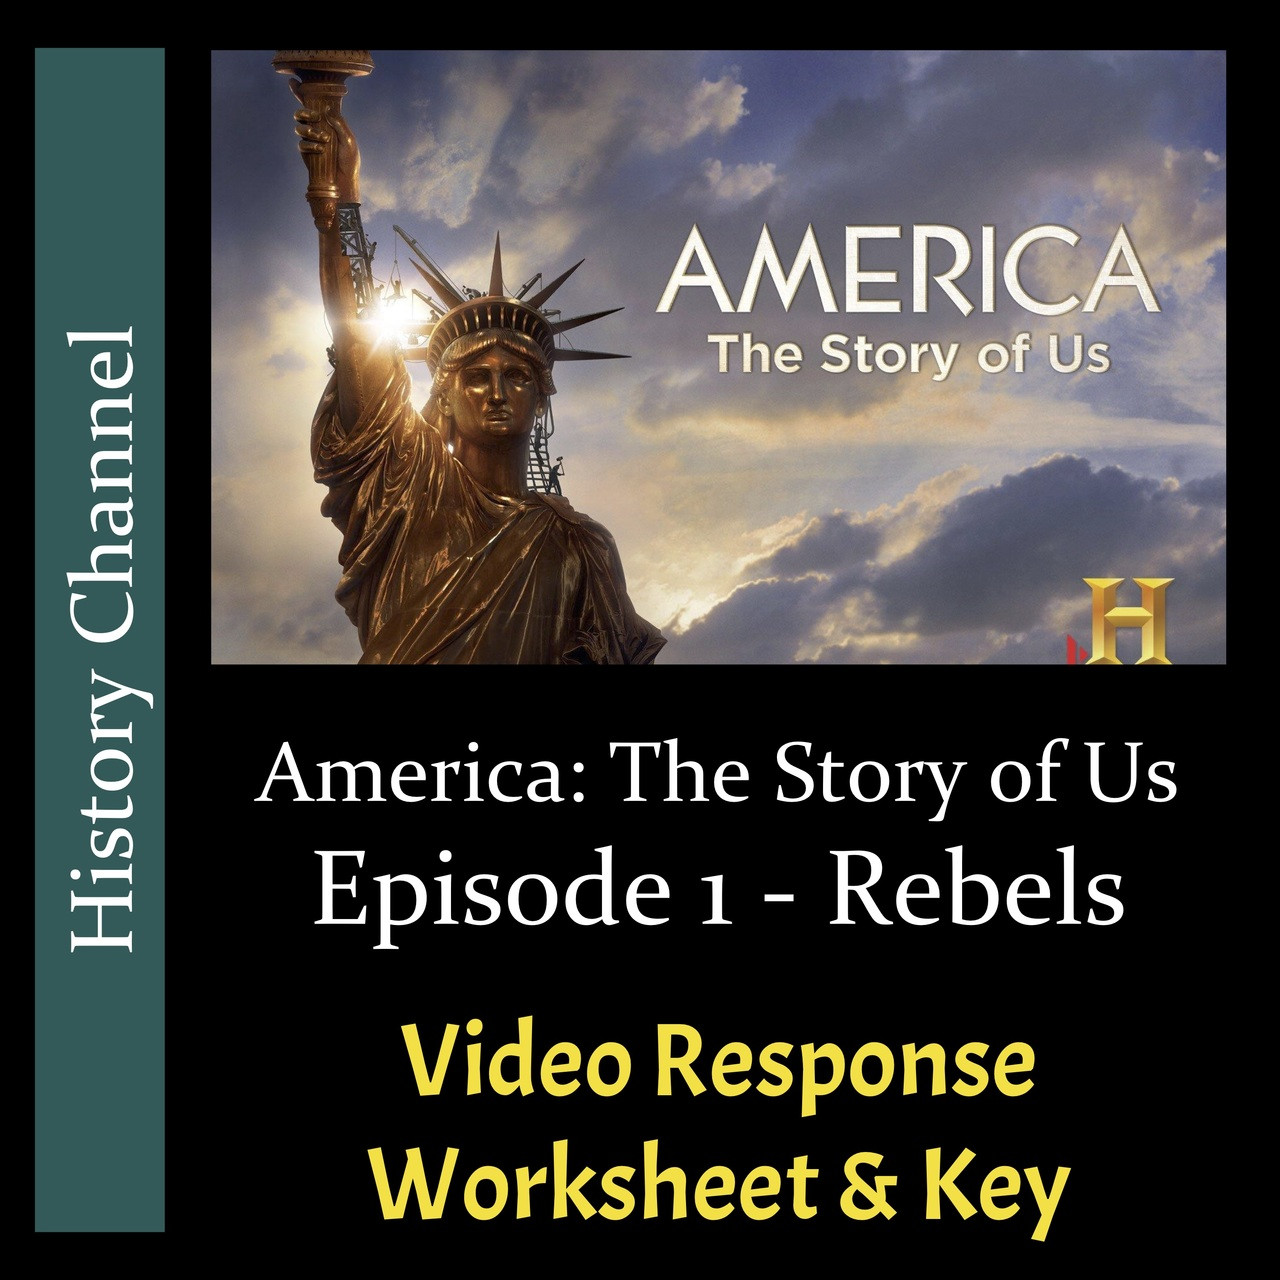 America The Story Of Us Episode 1 Rebels Video Response